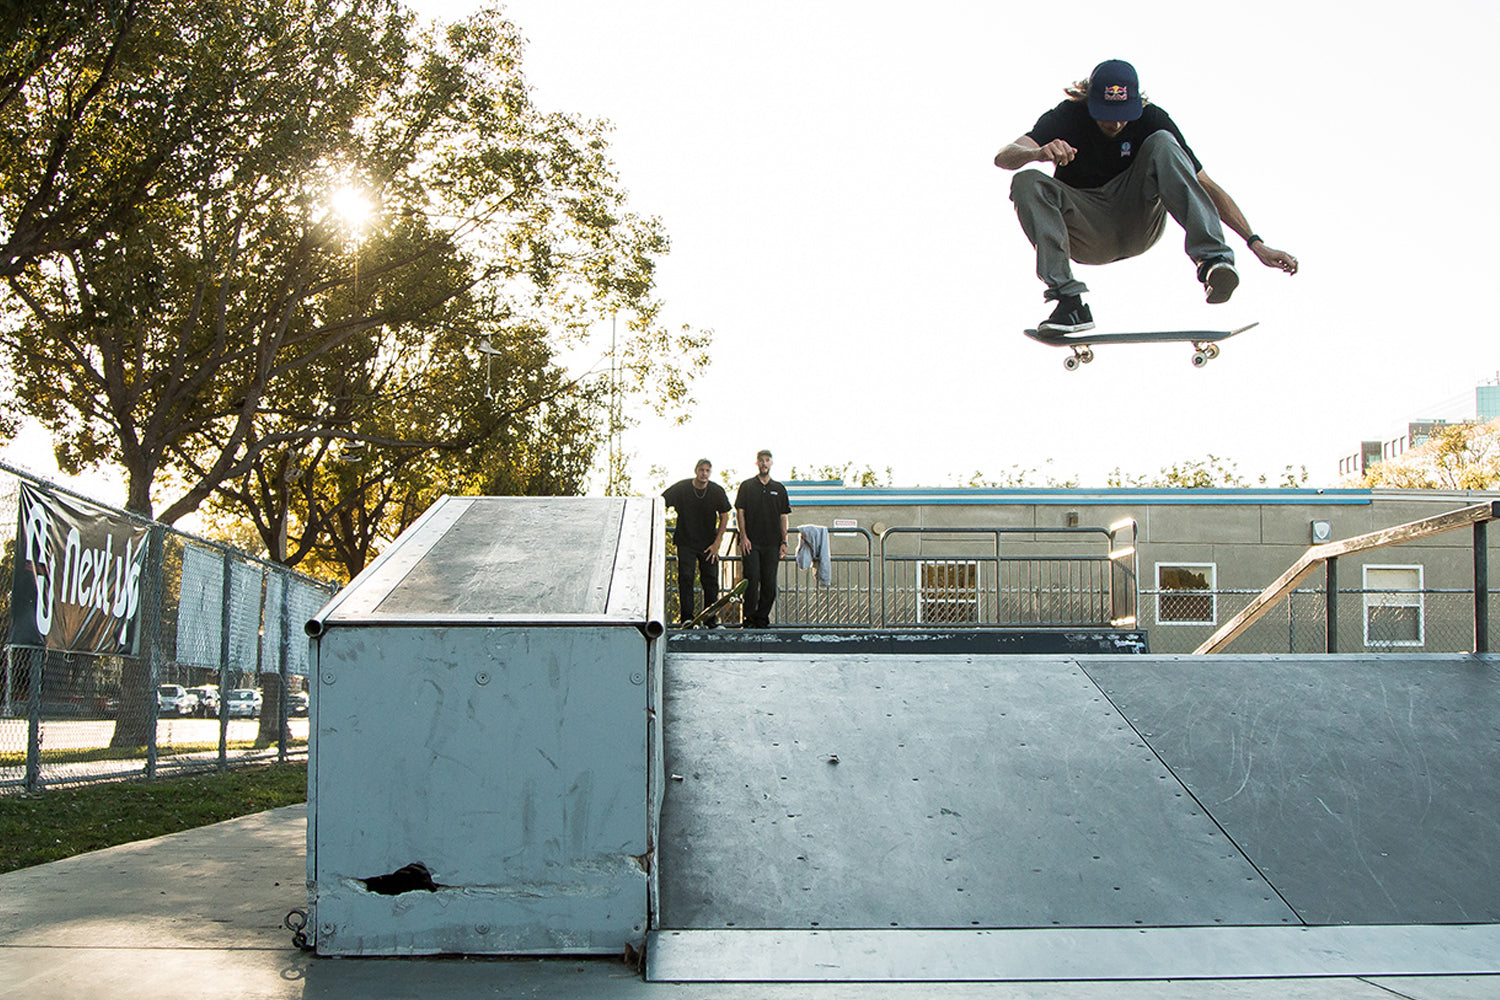 stoked-ride-shop-welcoming-beginners-to-skateboarding-featuring-NextUp-Foundation-5